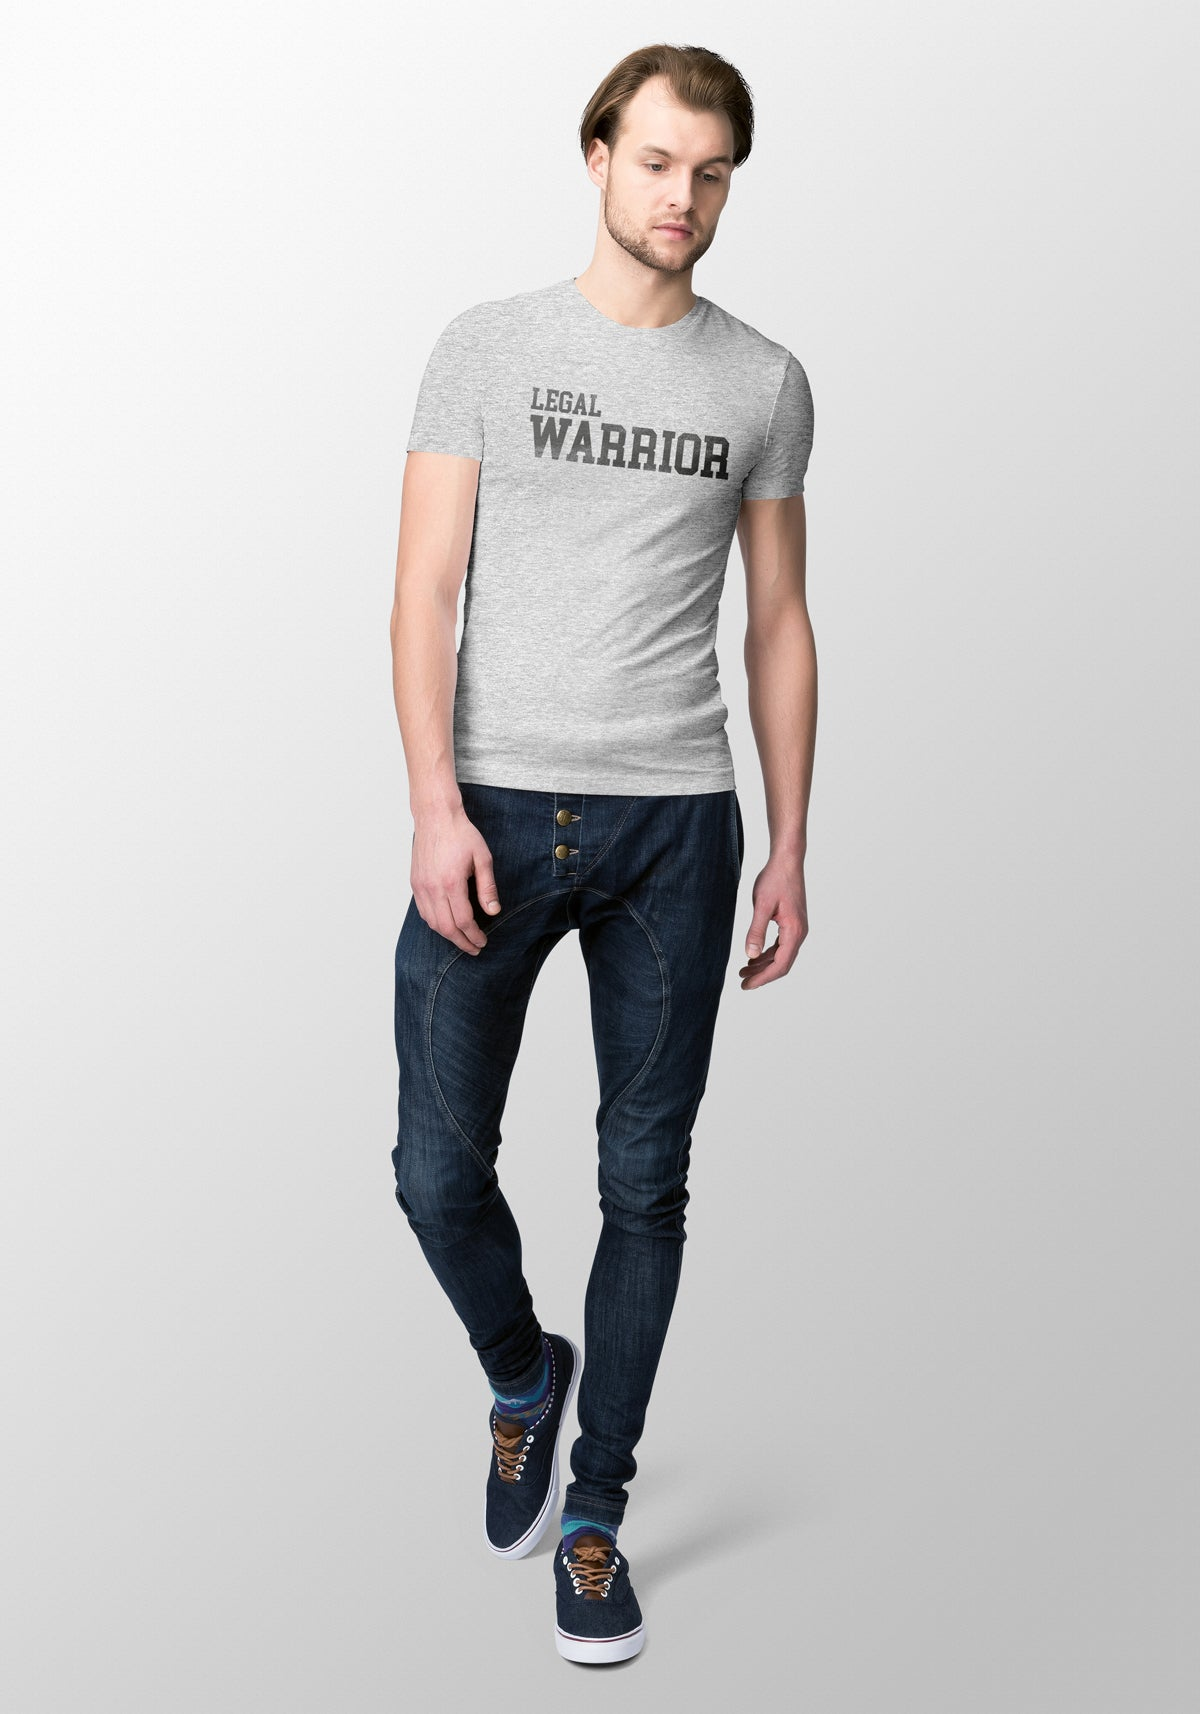 Legal Warrior Crew Neck Men's